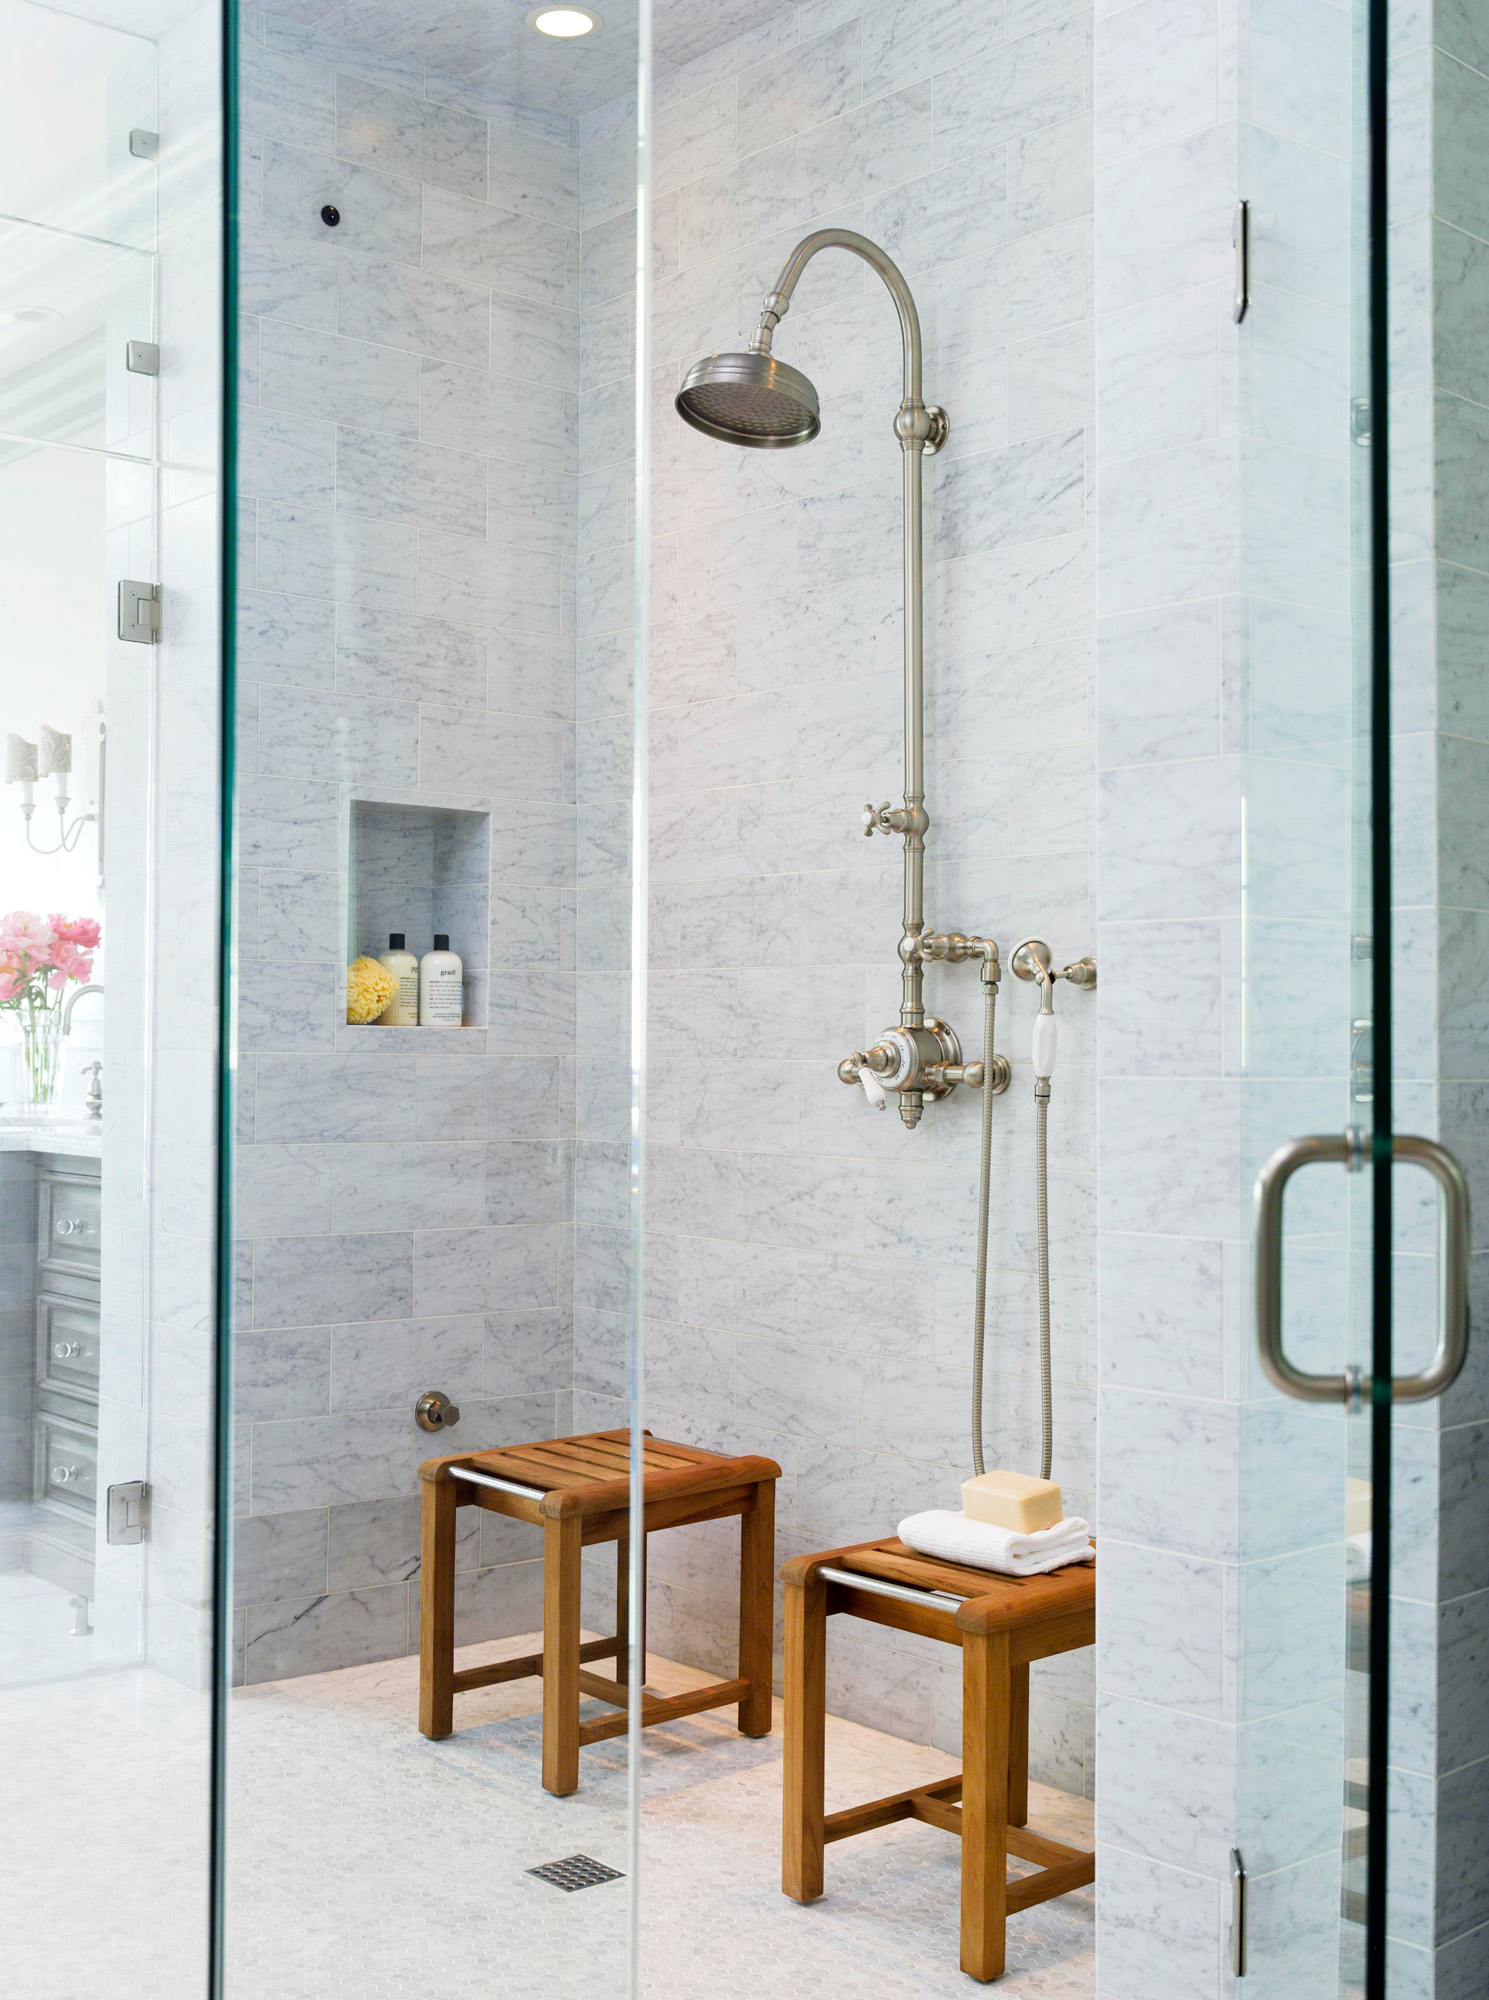 Two Person Shower Room with wooden stools